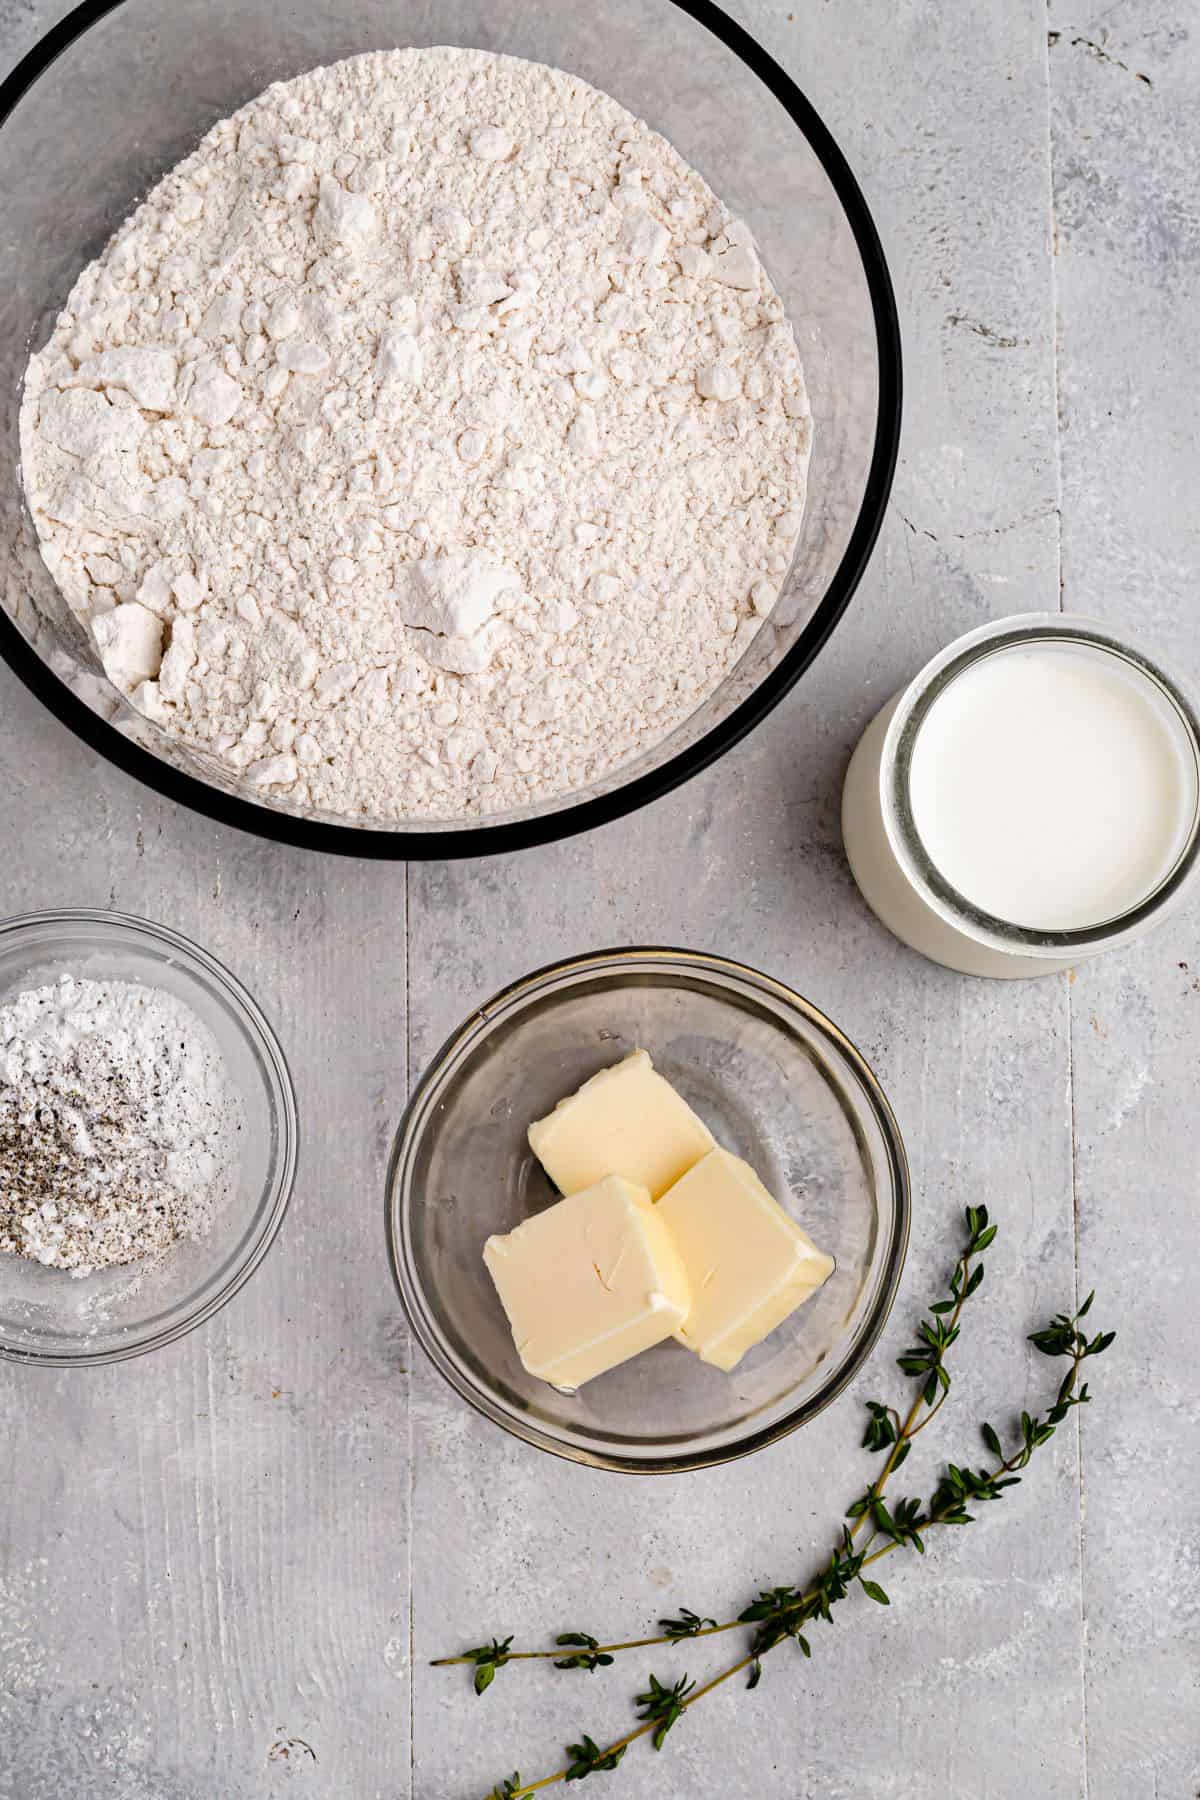 Clockwise from top: all-purpose flour, milk, butter, a sprig of thyme, seasonings and baking powder.